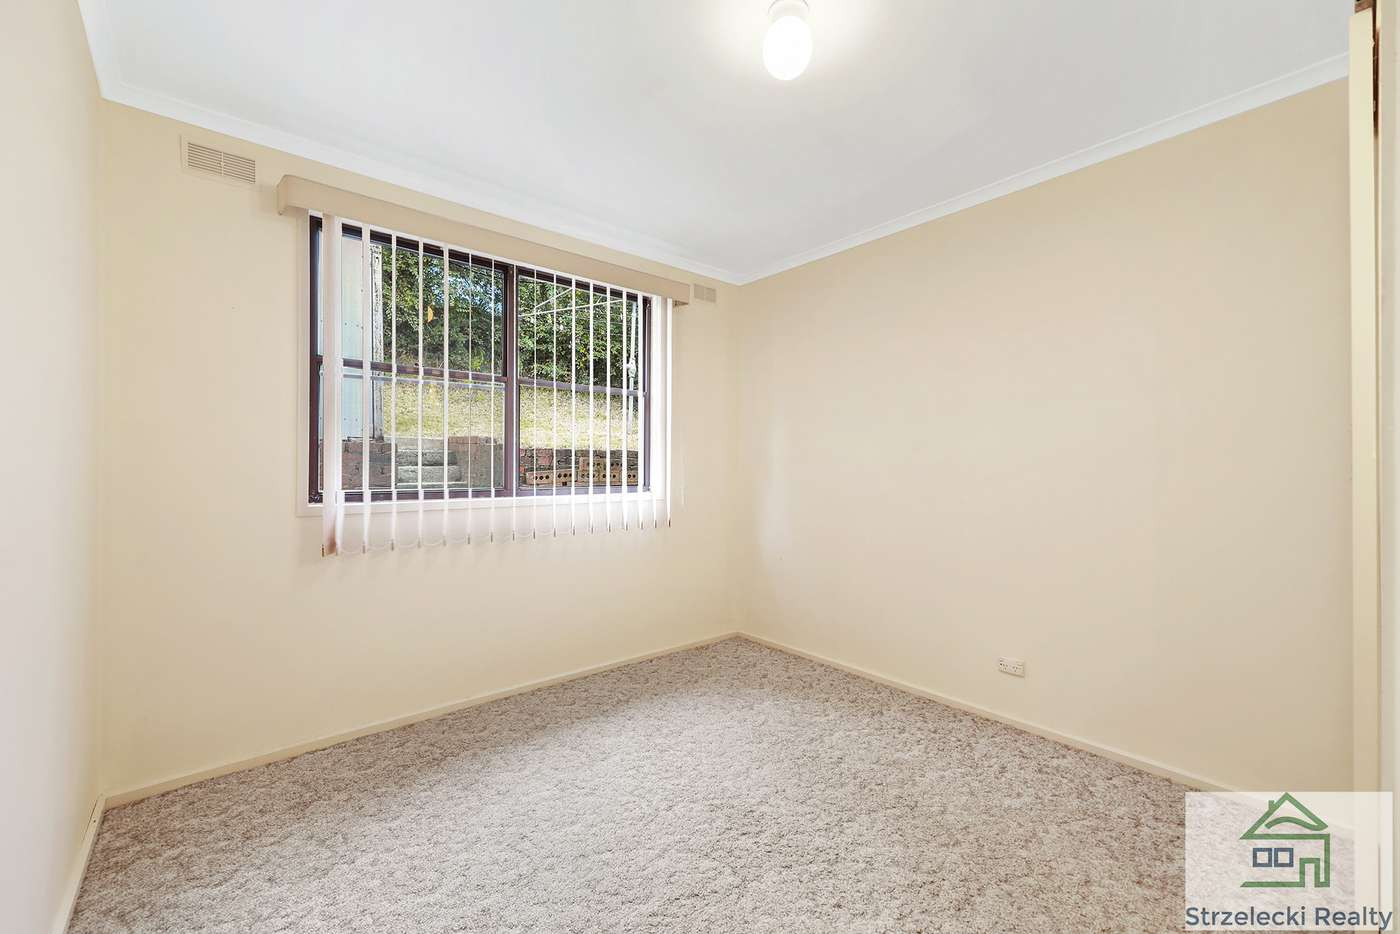 Seventh view of Homely house listing, 97-99 Thorpdale Rd, Trafalgar VIC 3824